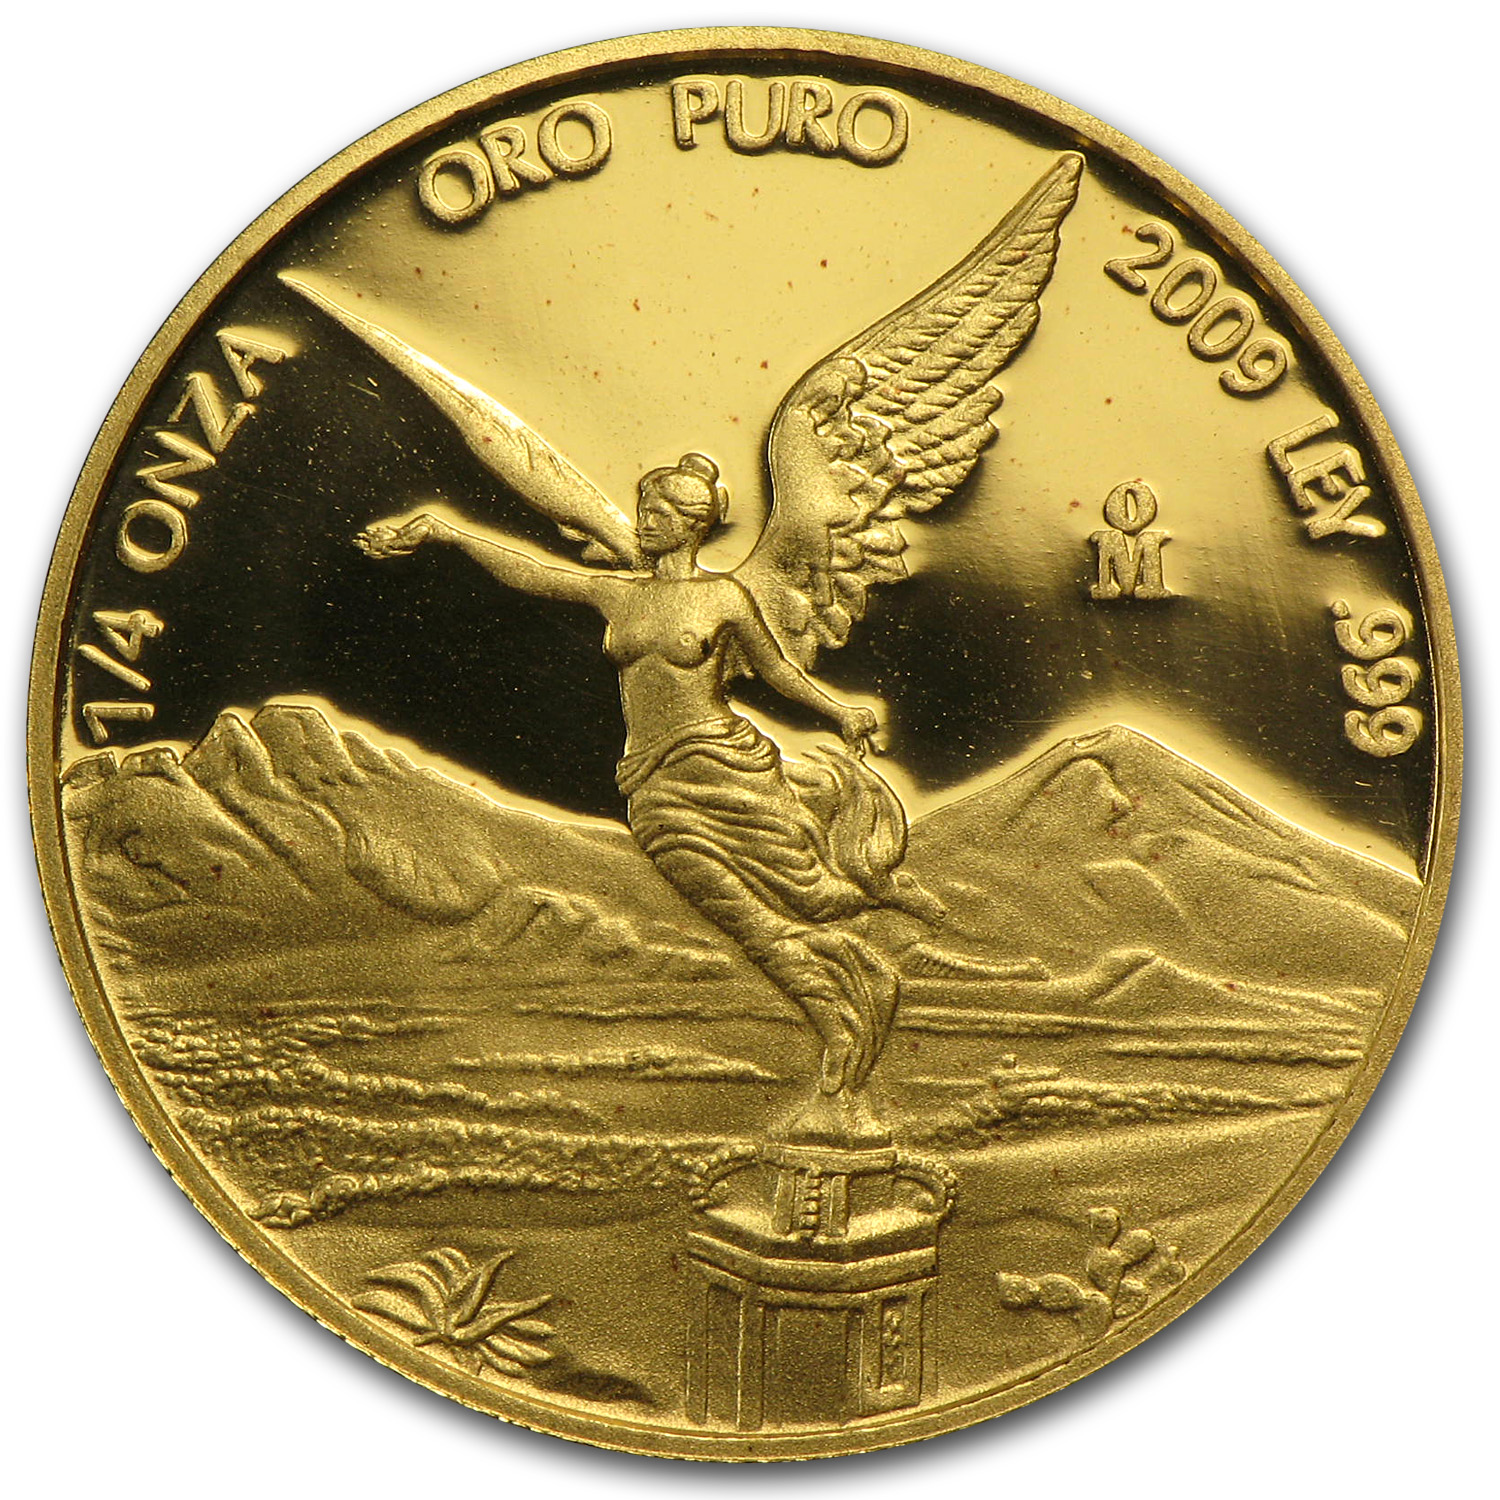 2009 1/4 oz Gold Mexican Libertad - Proof